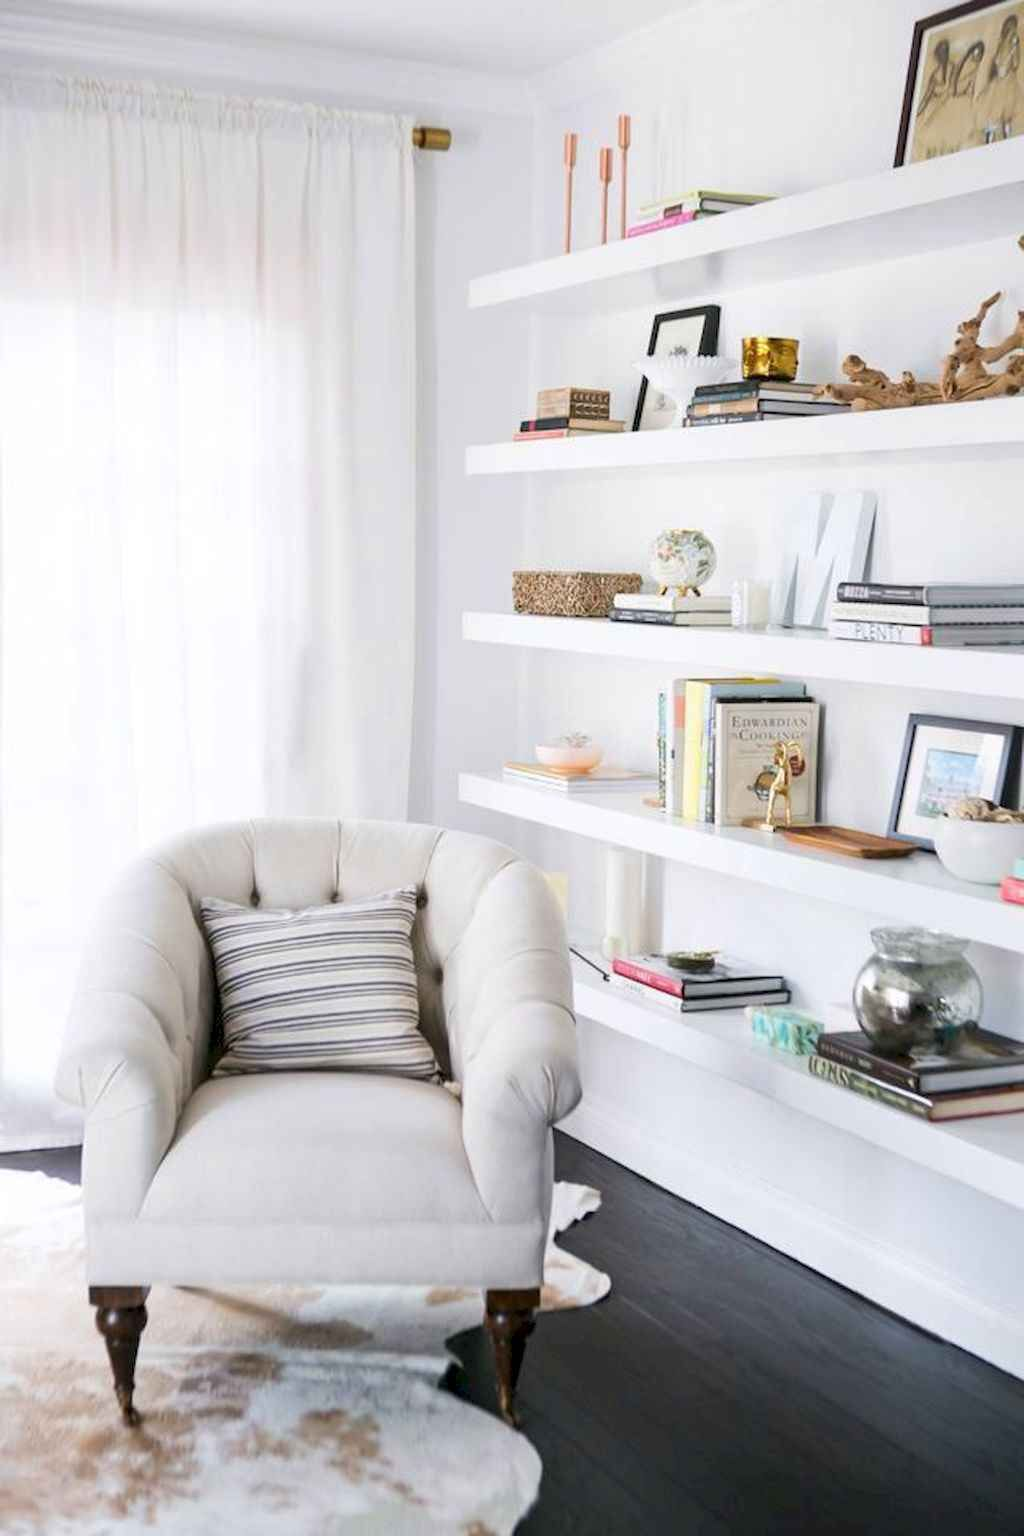 50 Diy Floating Shelves For Living Room Decorating Floating